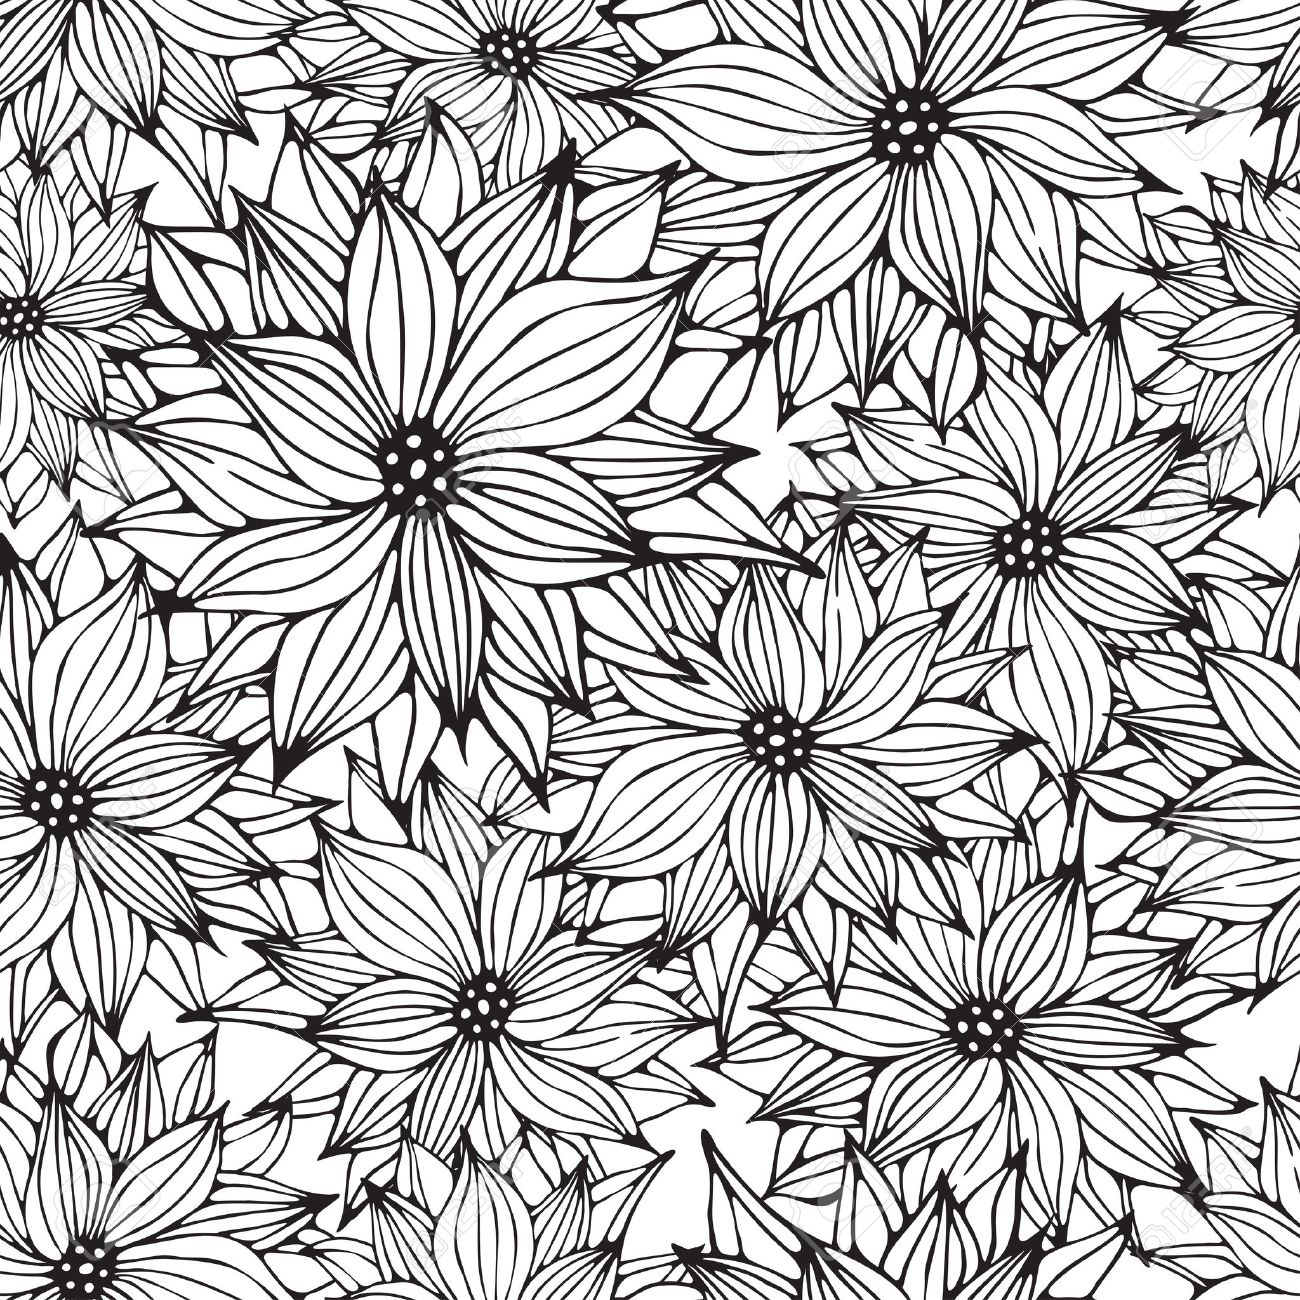 background designs drawing at getdrawingscom free for